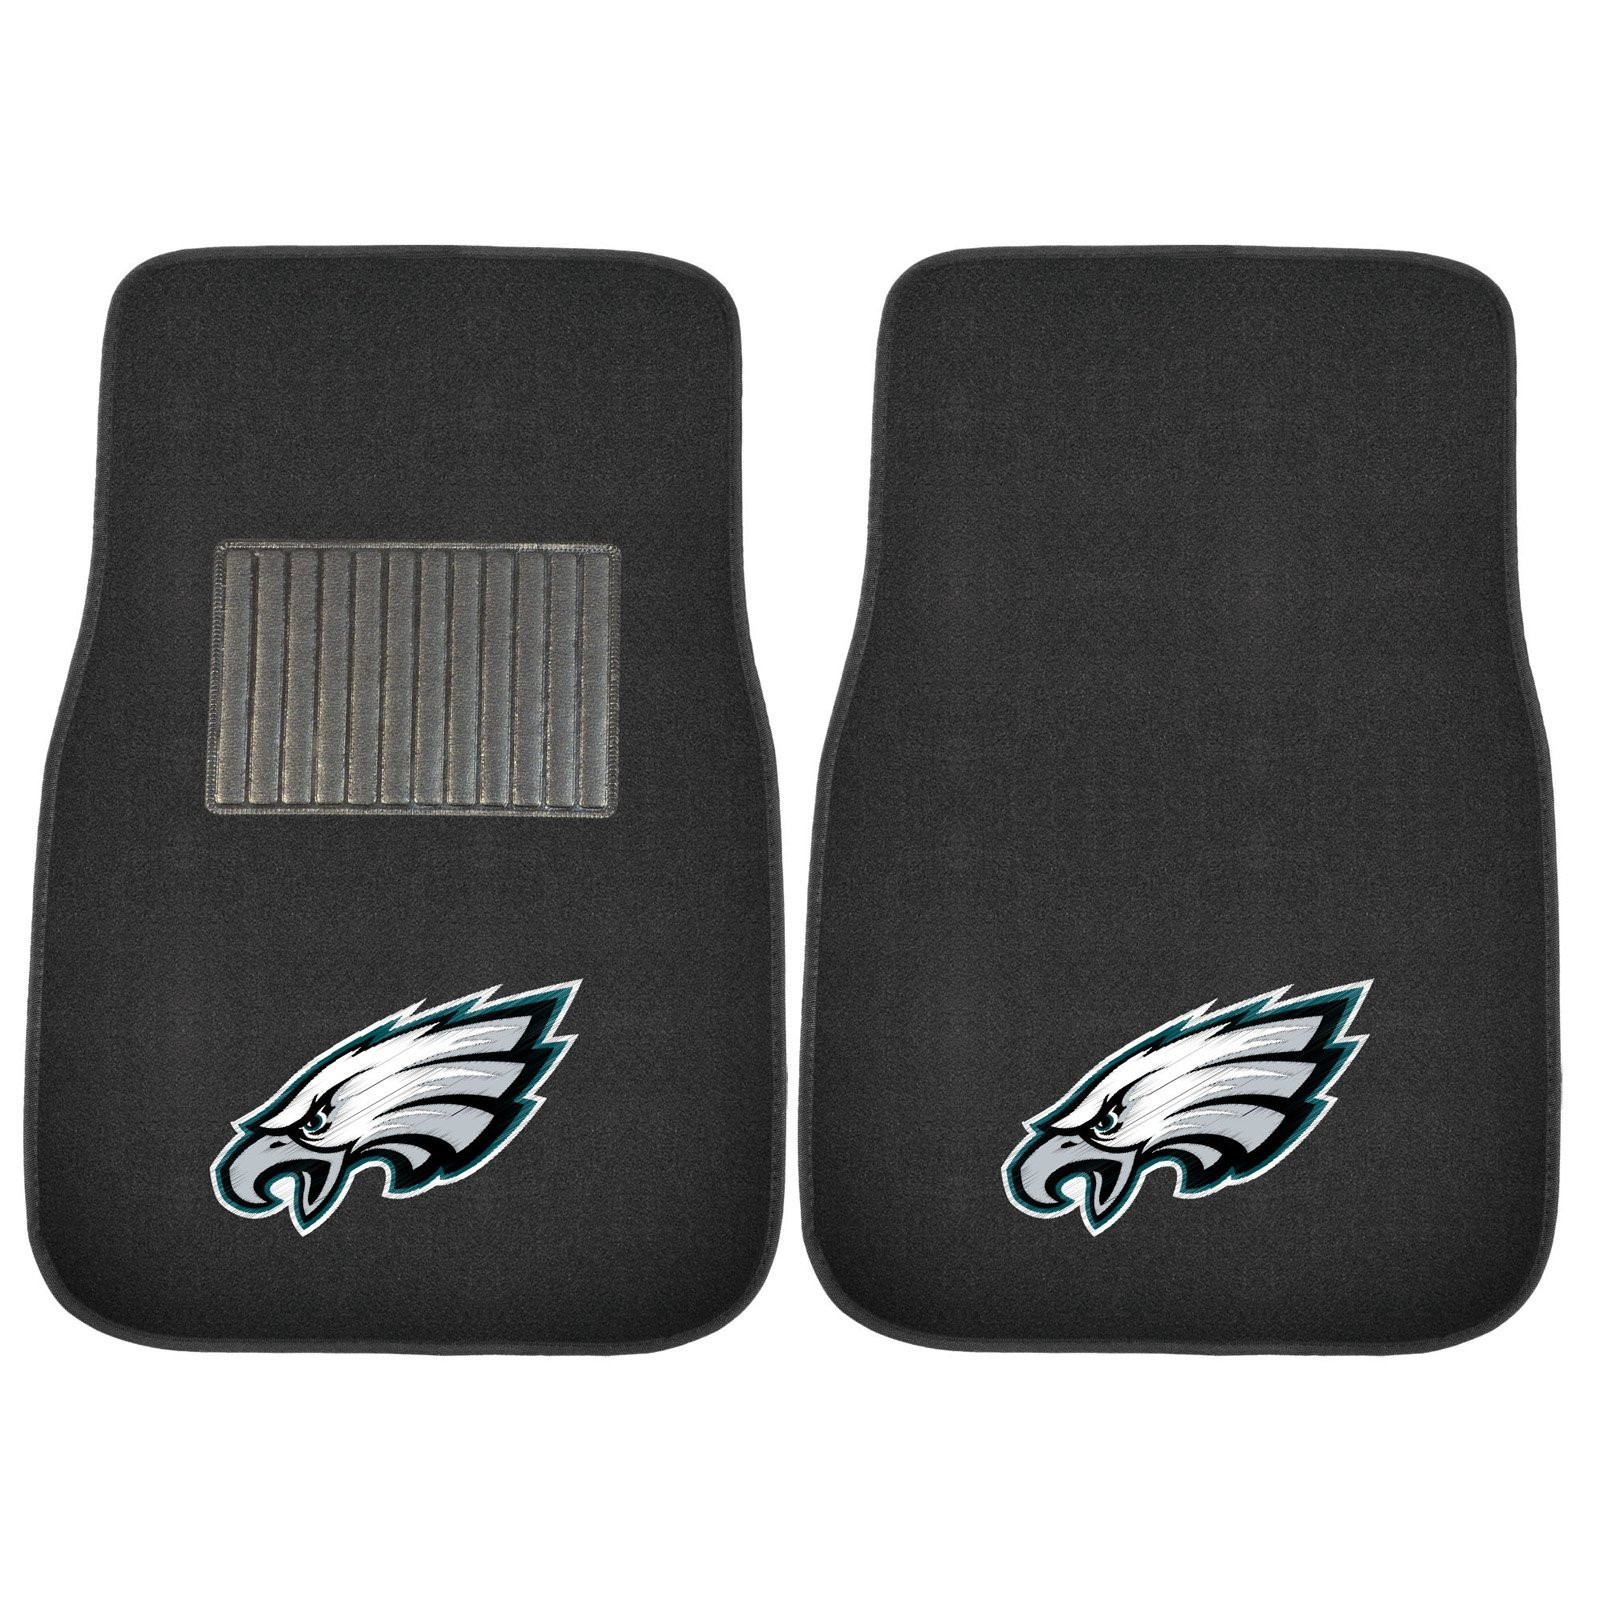 Fan Mats NFL Football Embroidered Car Mat - Set of 2